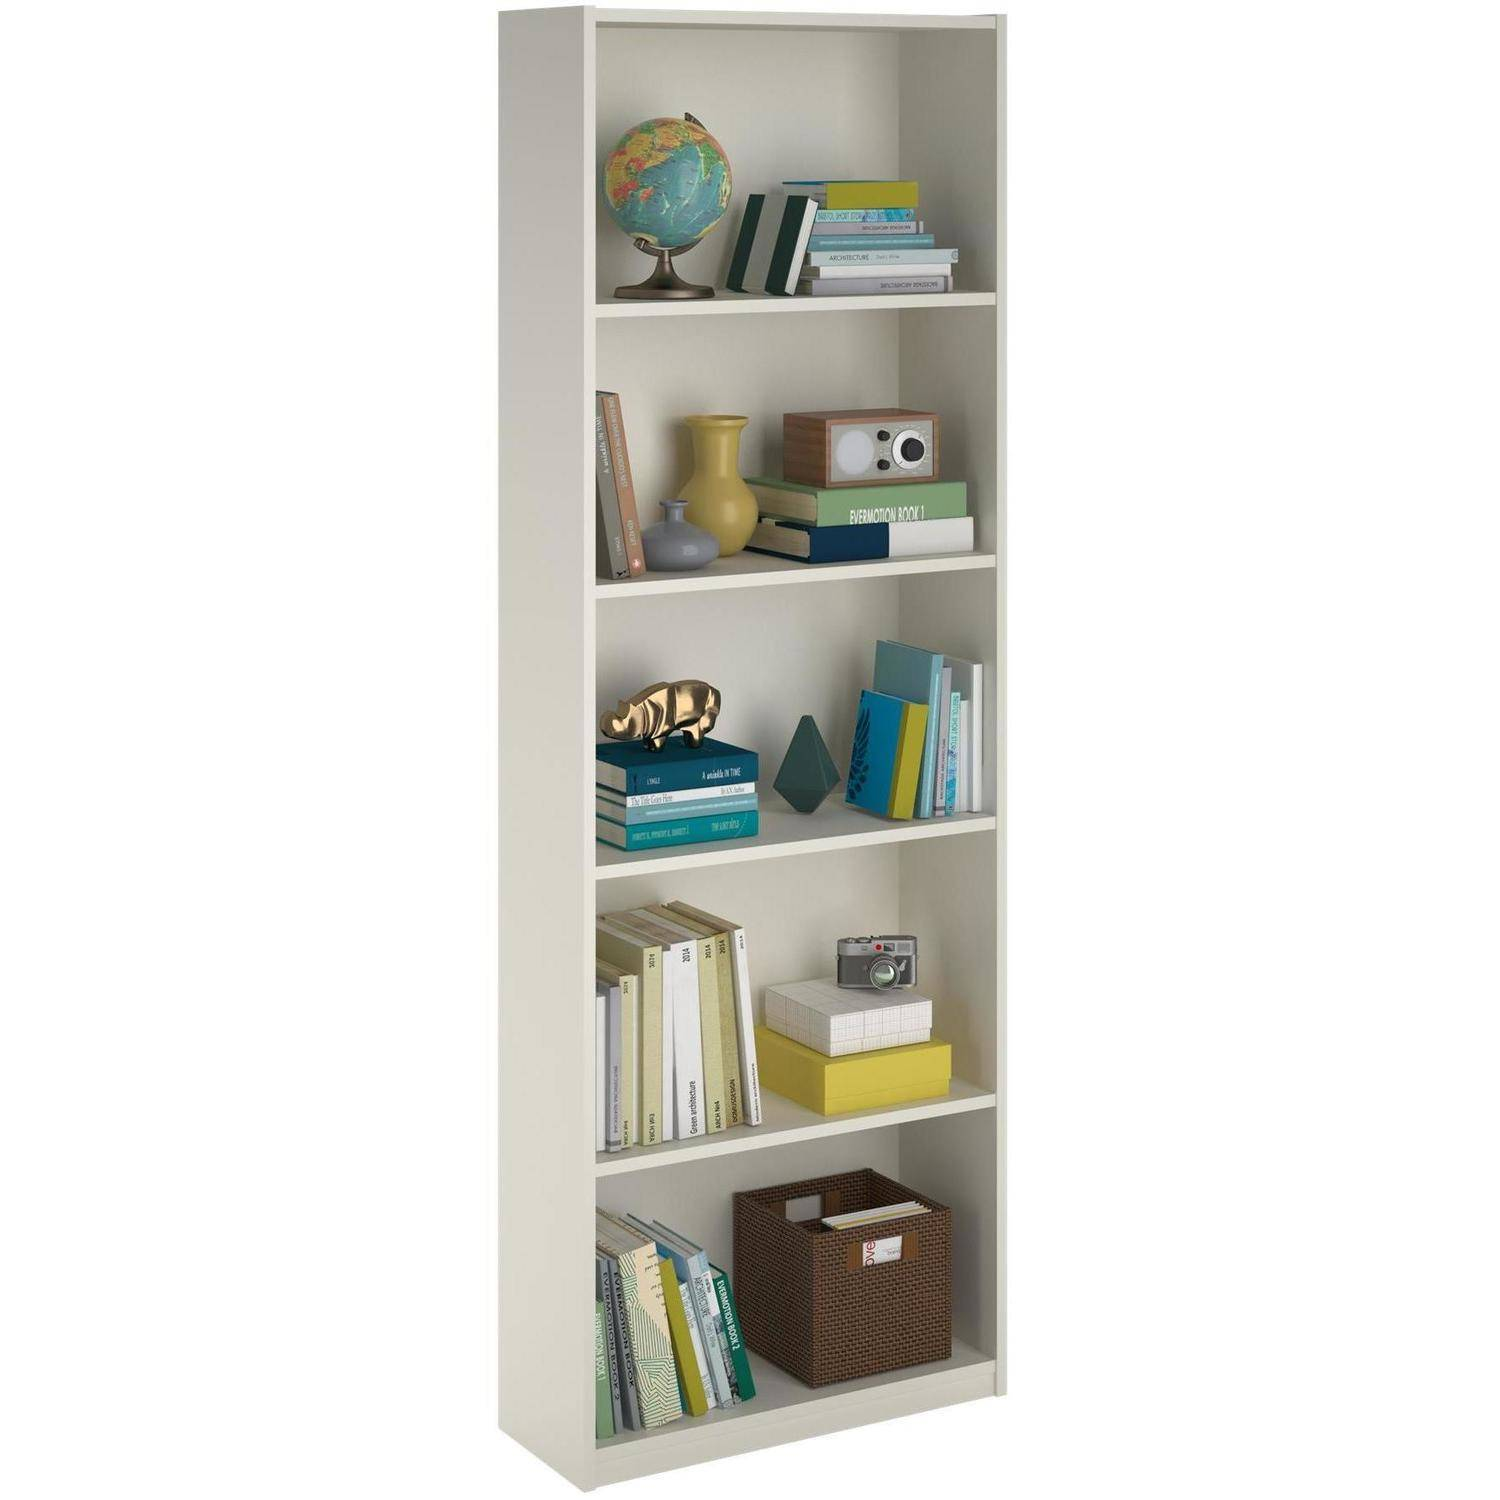 House Bookshelf: Ameriwood 5-Shelf Bookcase Storage Home Office Shelving